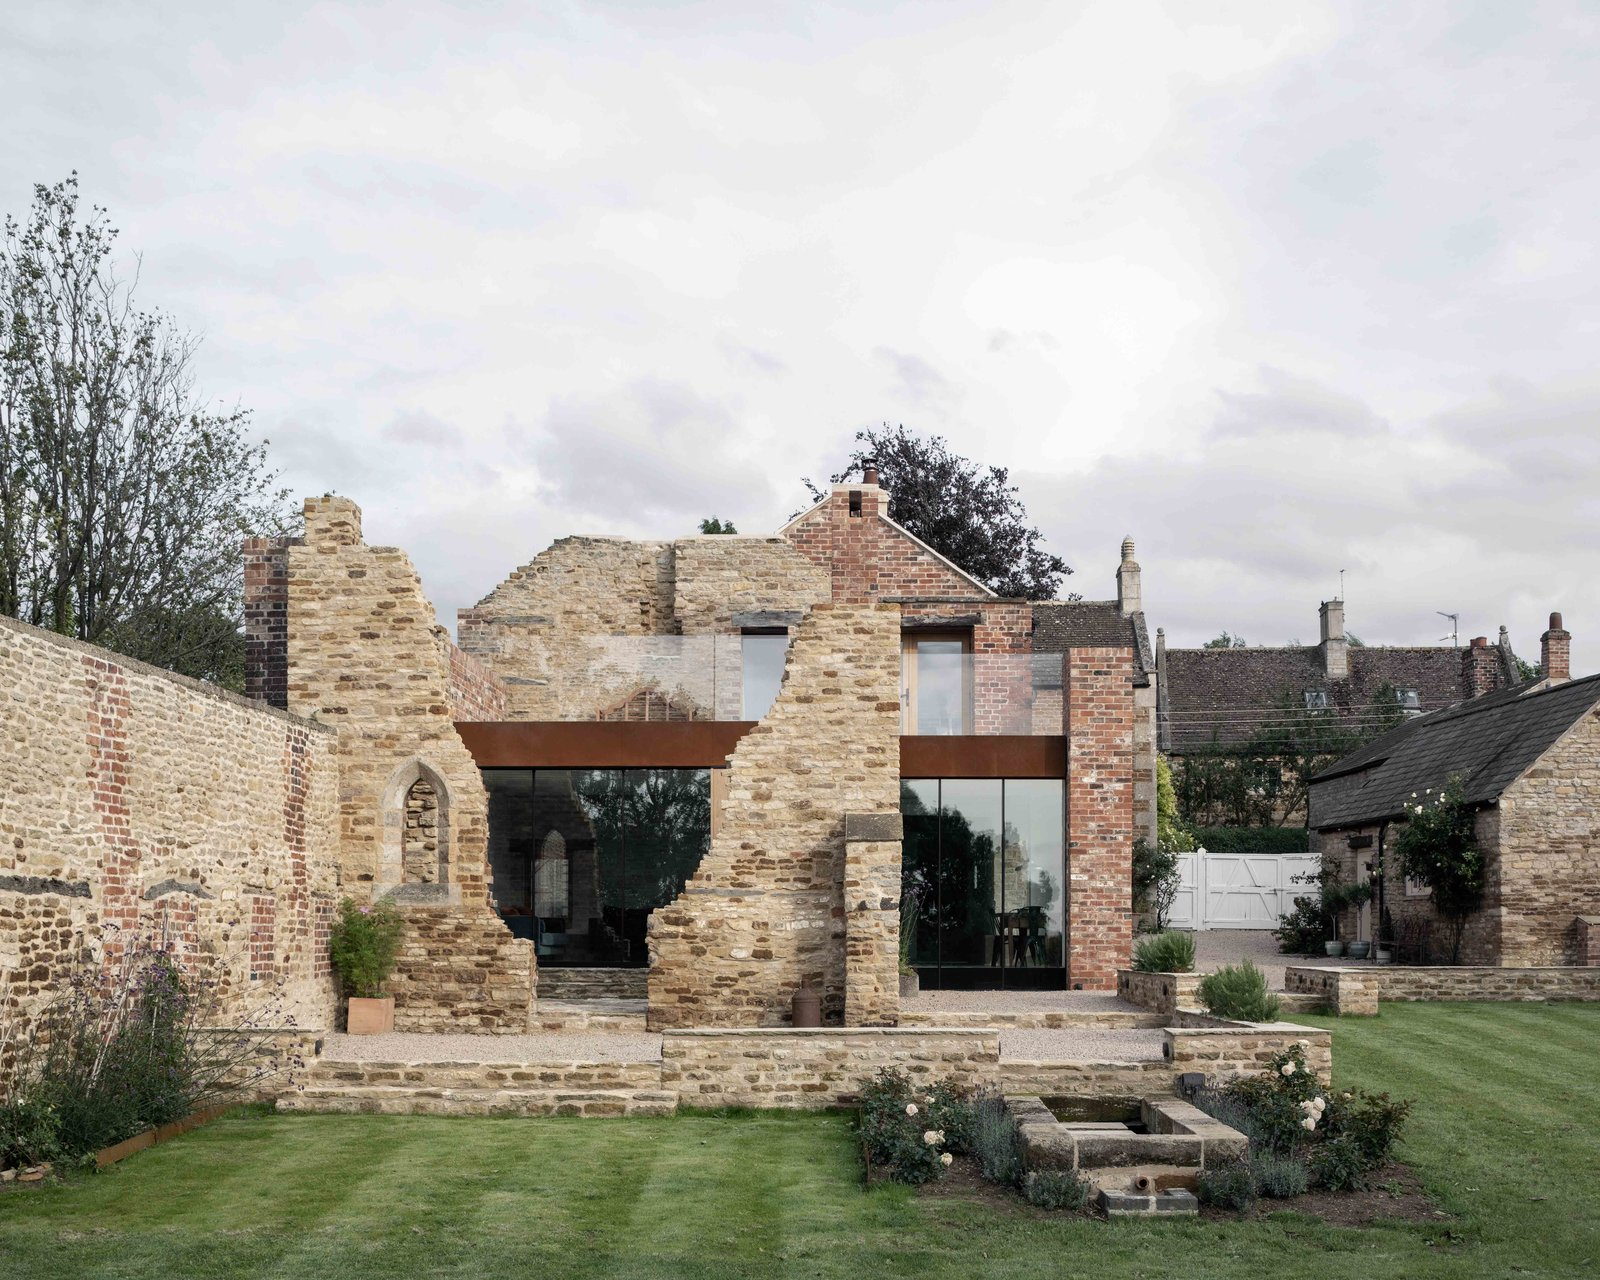 Will Gamble Architects revived a crumbling, 17th-century structure with a svelte addition of steel, brick, and glass. The disorderly nature of the ruin is juxtaposed against the modern structure, which expands a Victorian-era residence. The facade's brickwork was largely completed using reclaimed materials, allowing the new section to sensitively blend into its surroundings.